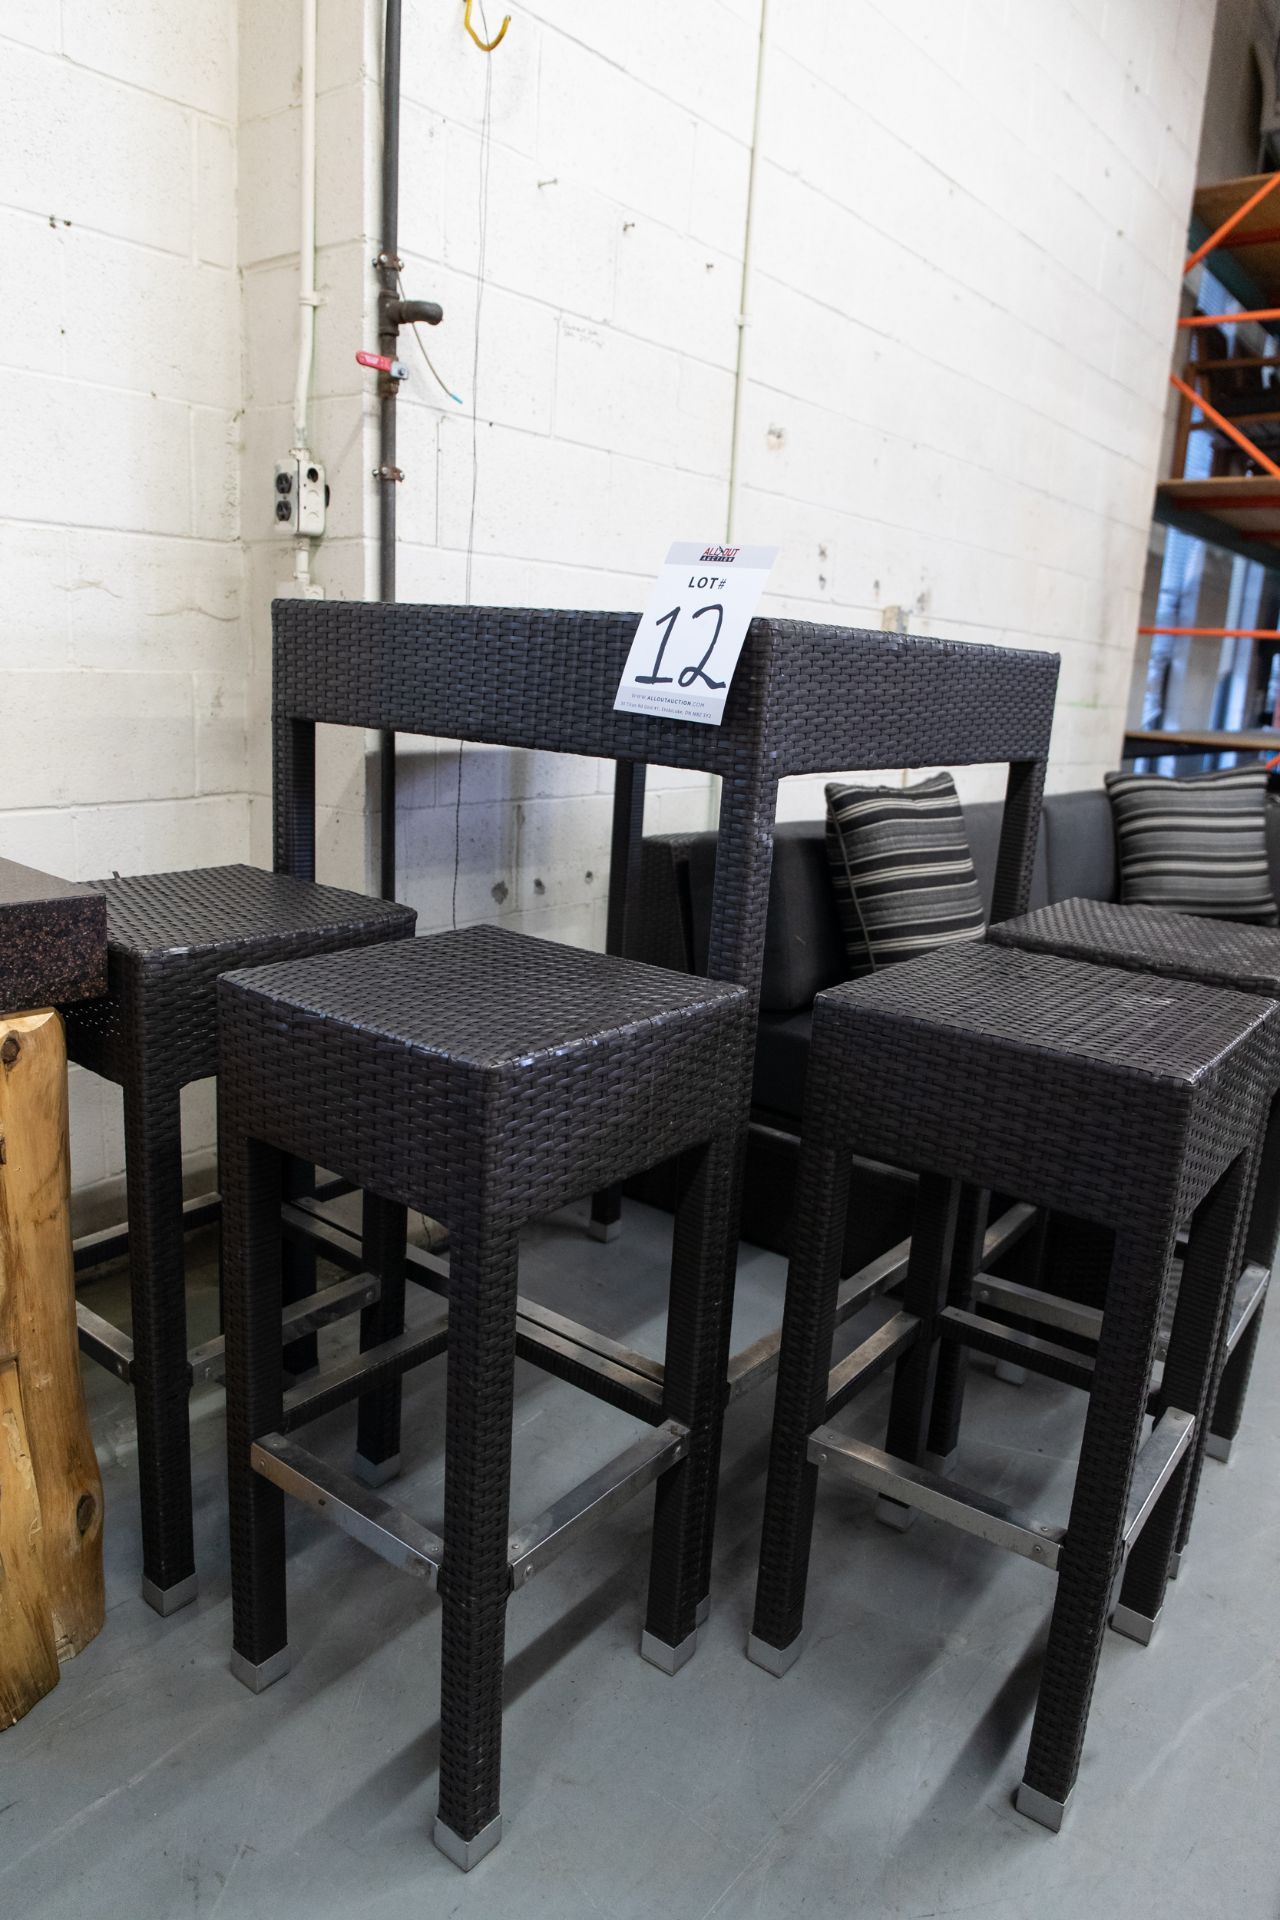 "OUTDOOR FAUX WICKER HIGH TOP TABLE WITH 4 STOOLS H-43"" W- 29""BY 29"" - Image 3 of 4"